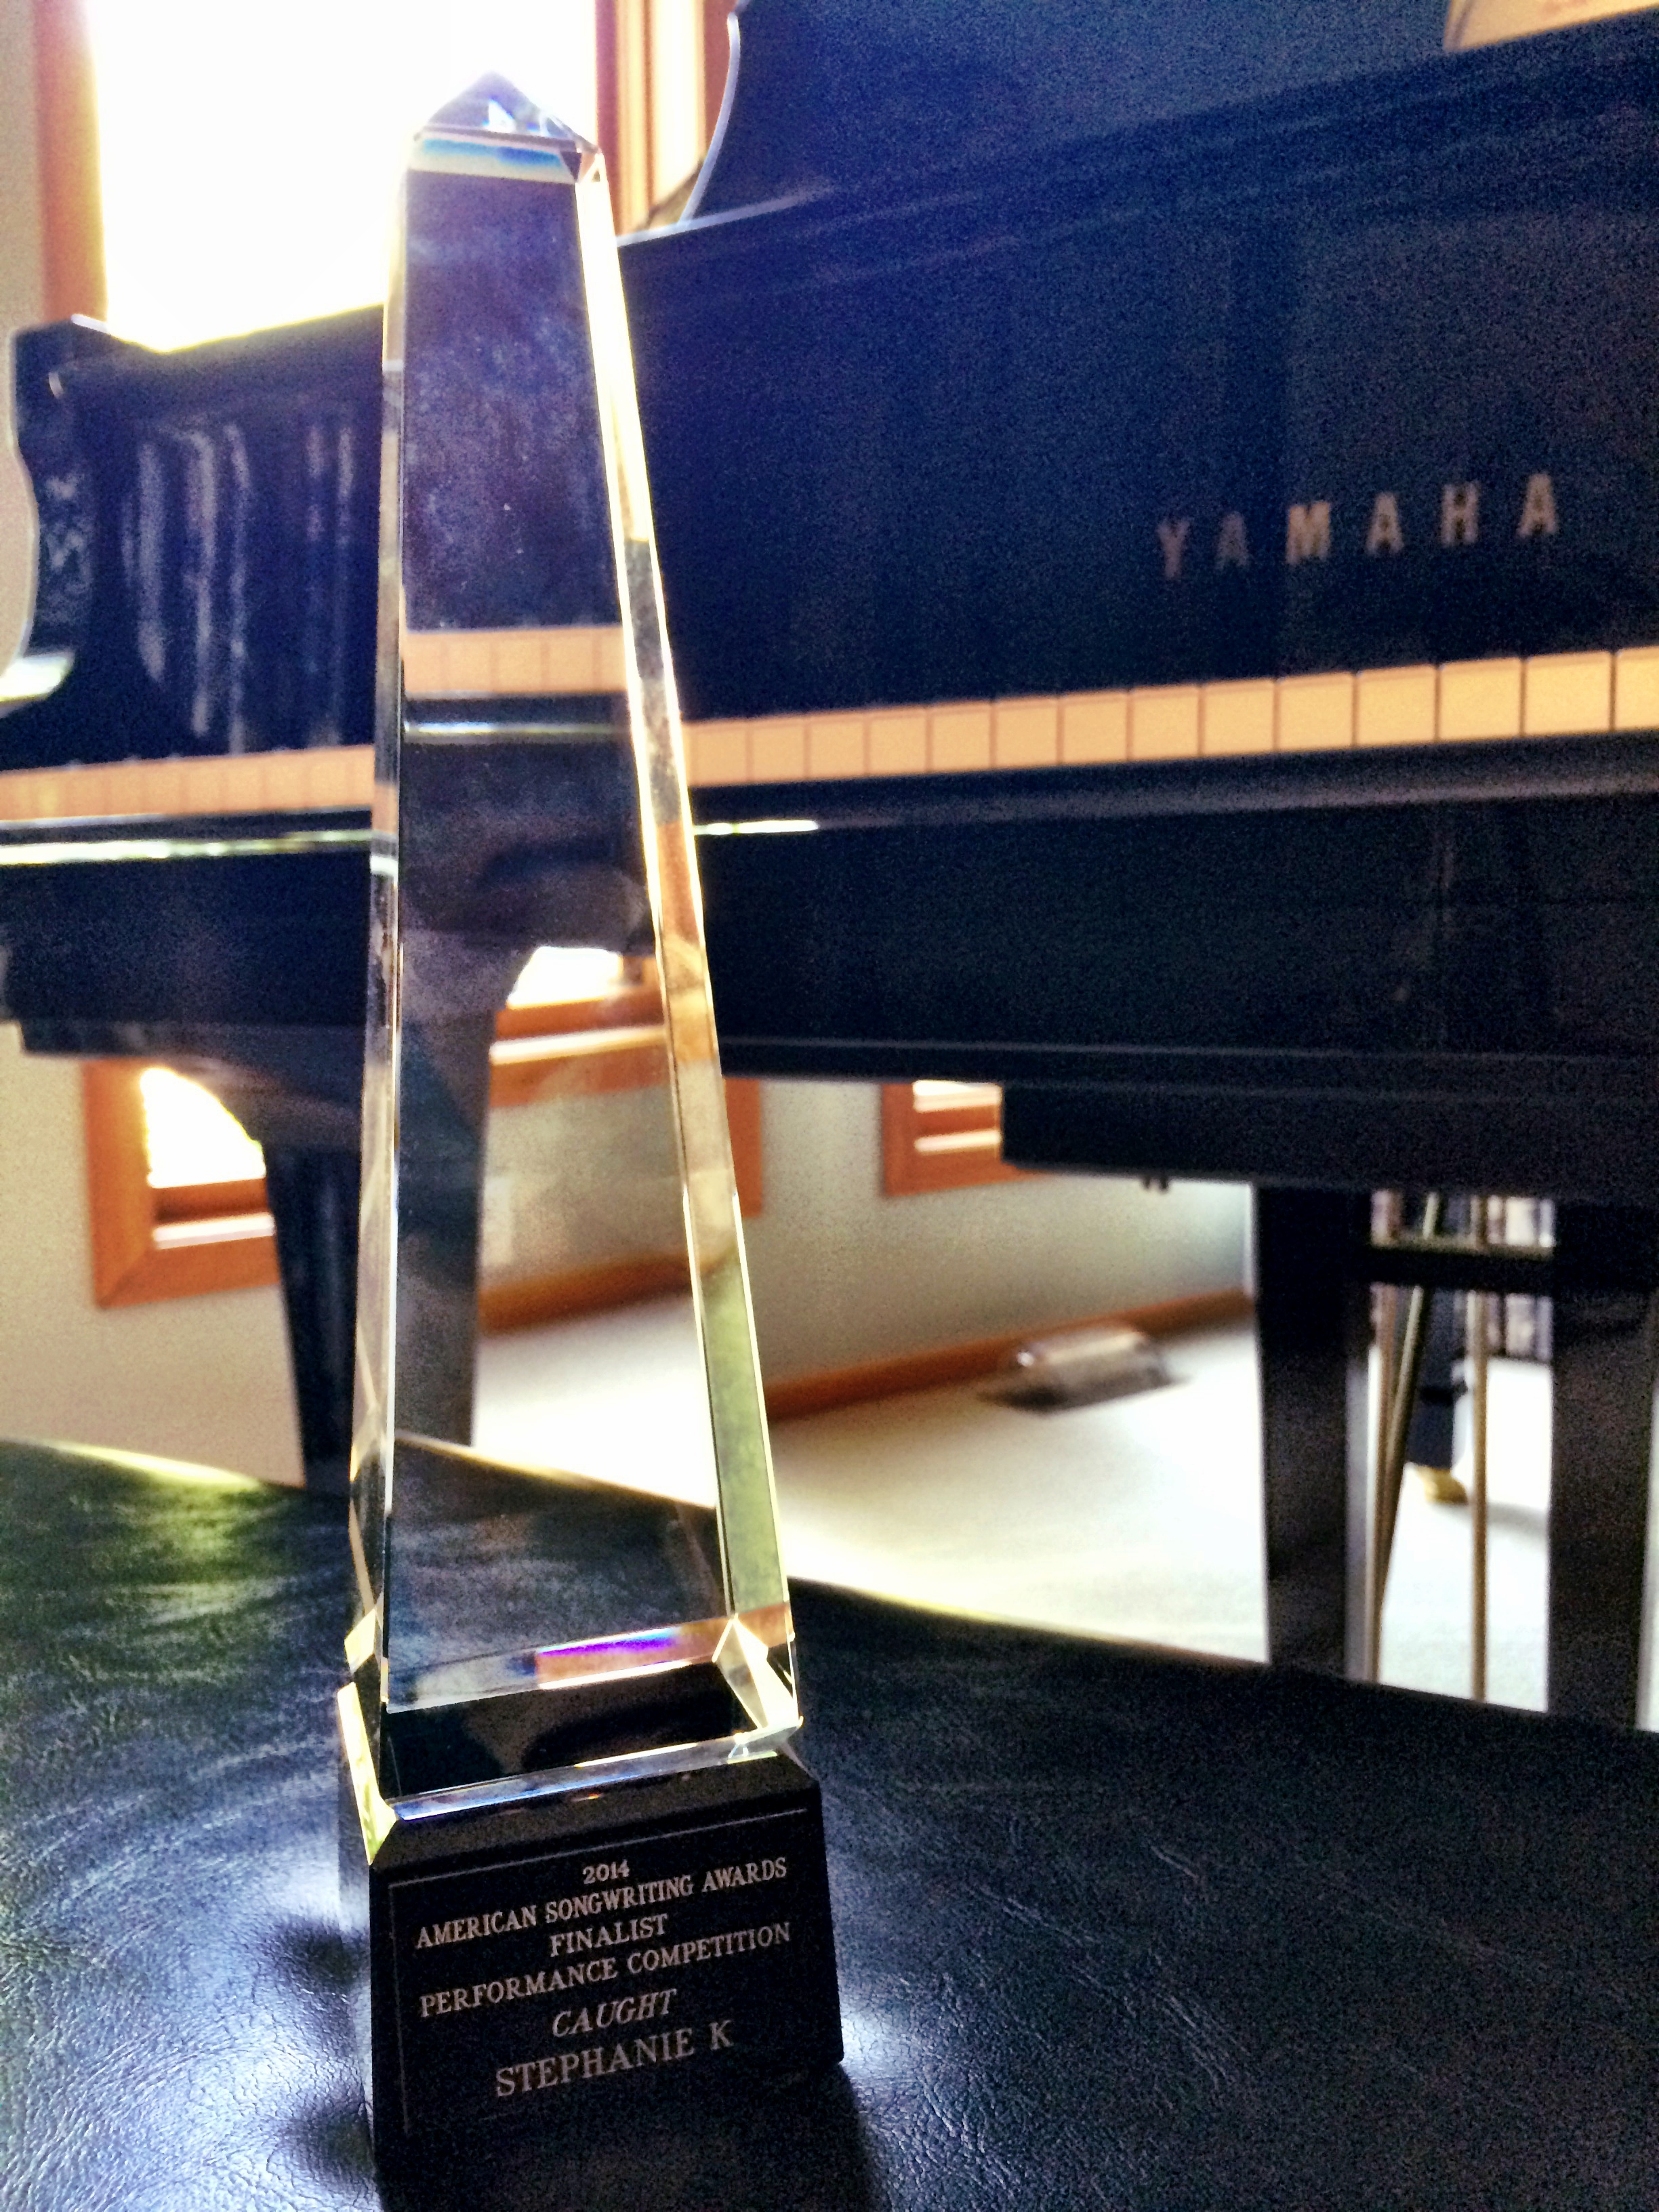 American Songwriting Awards Trophy!